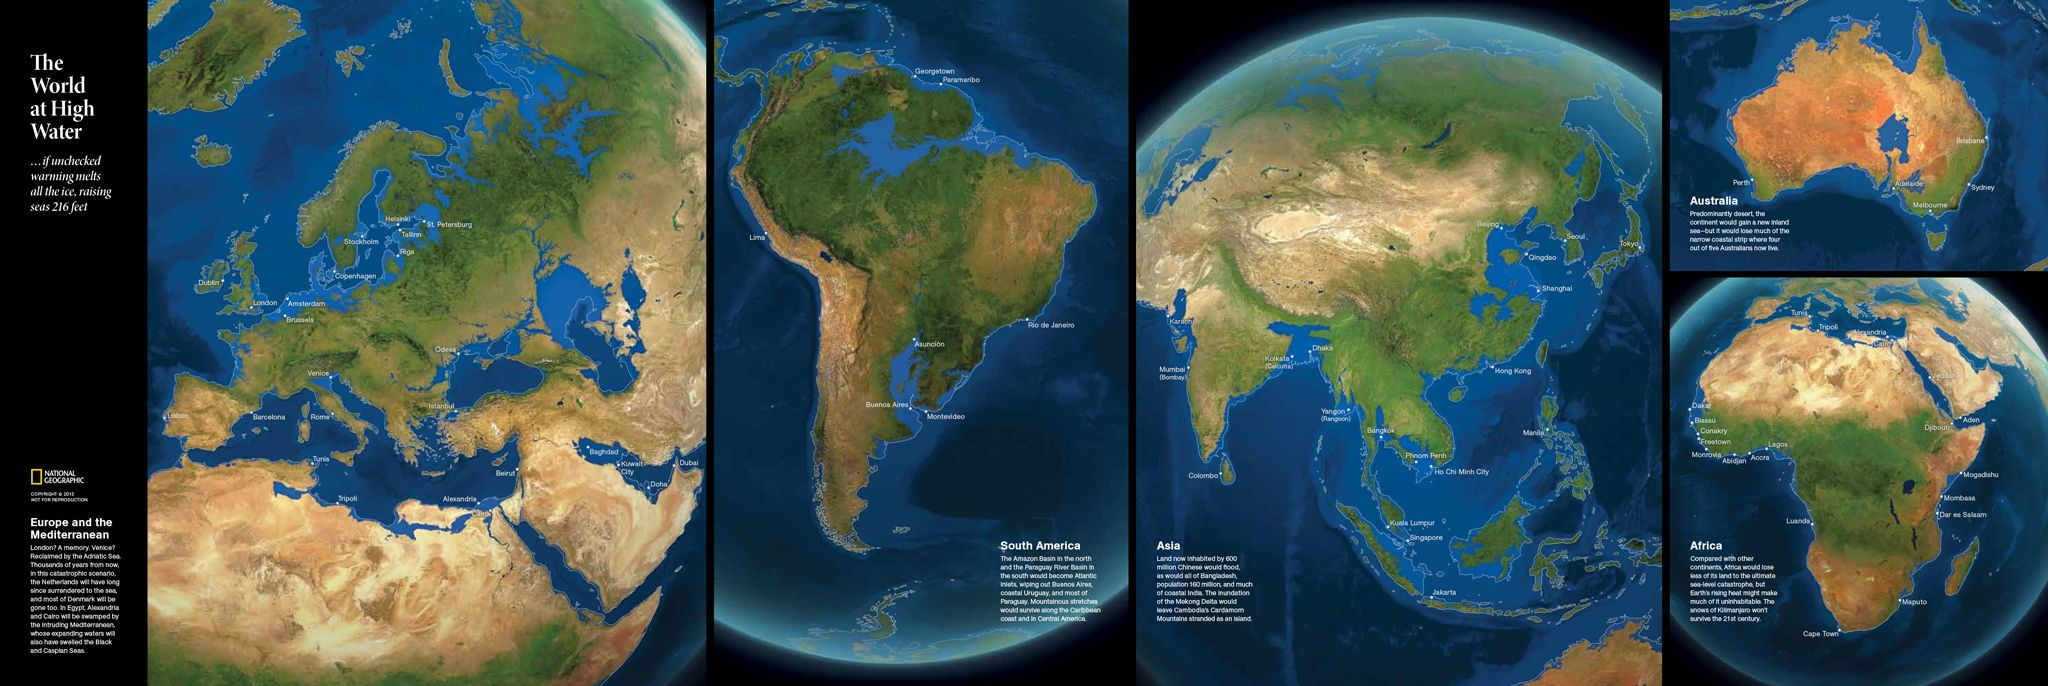 IF ALL THE ICE MELTED Map Showing How The Continents Would - Map of us if all the glaciers melted